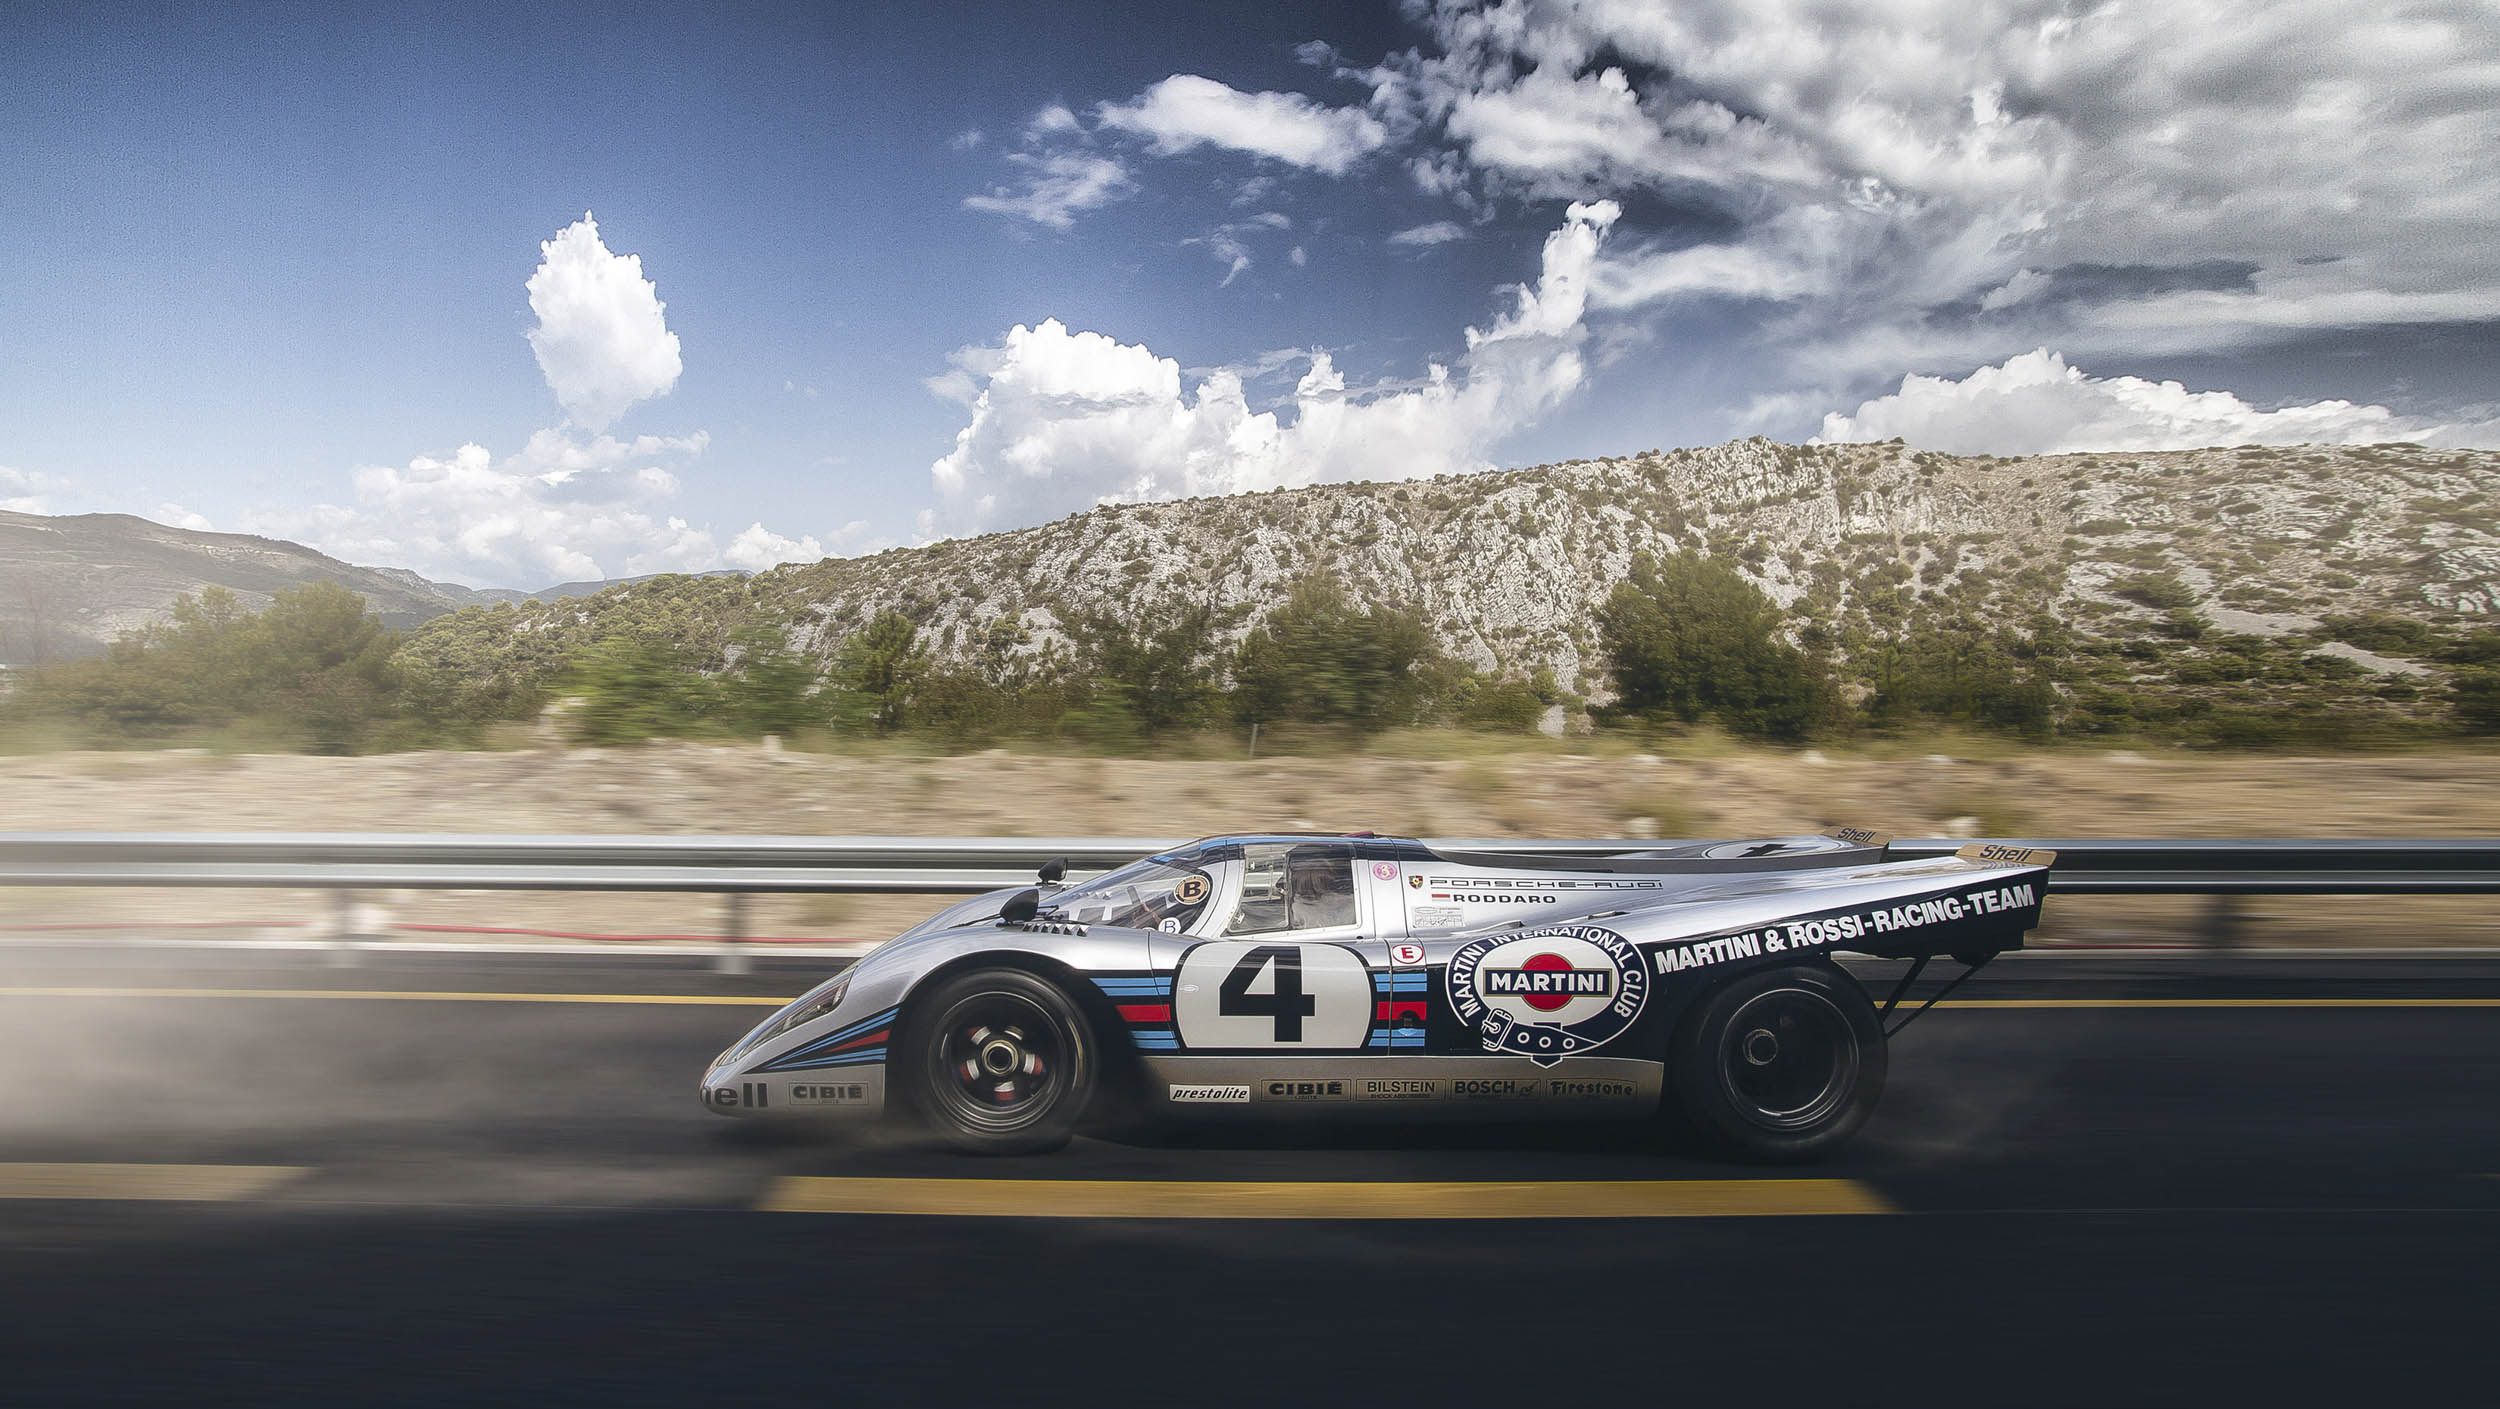 Porsche 917K profile on the road